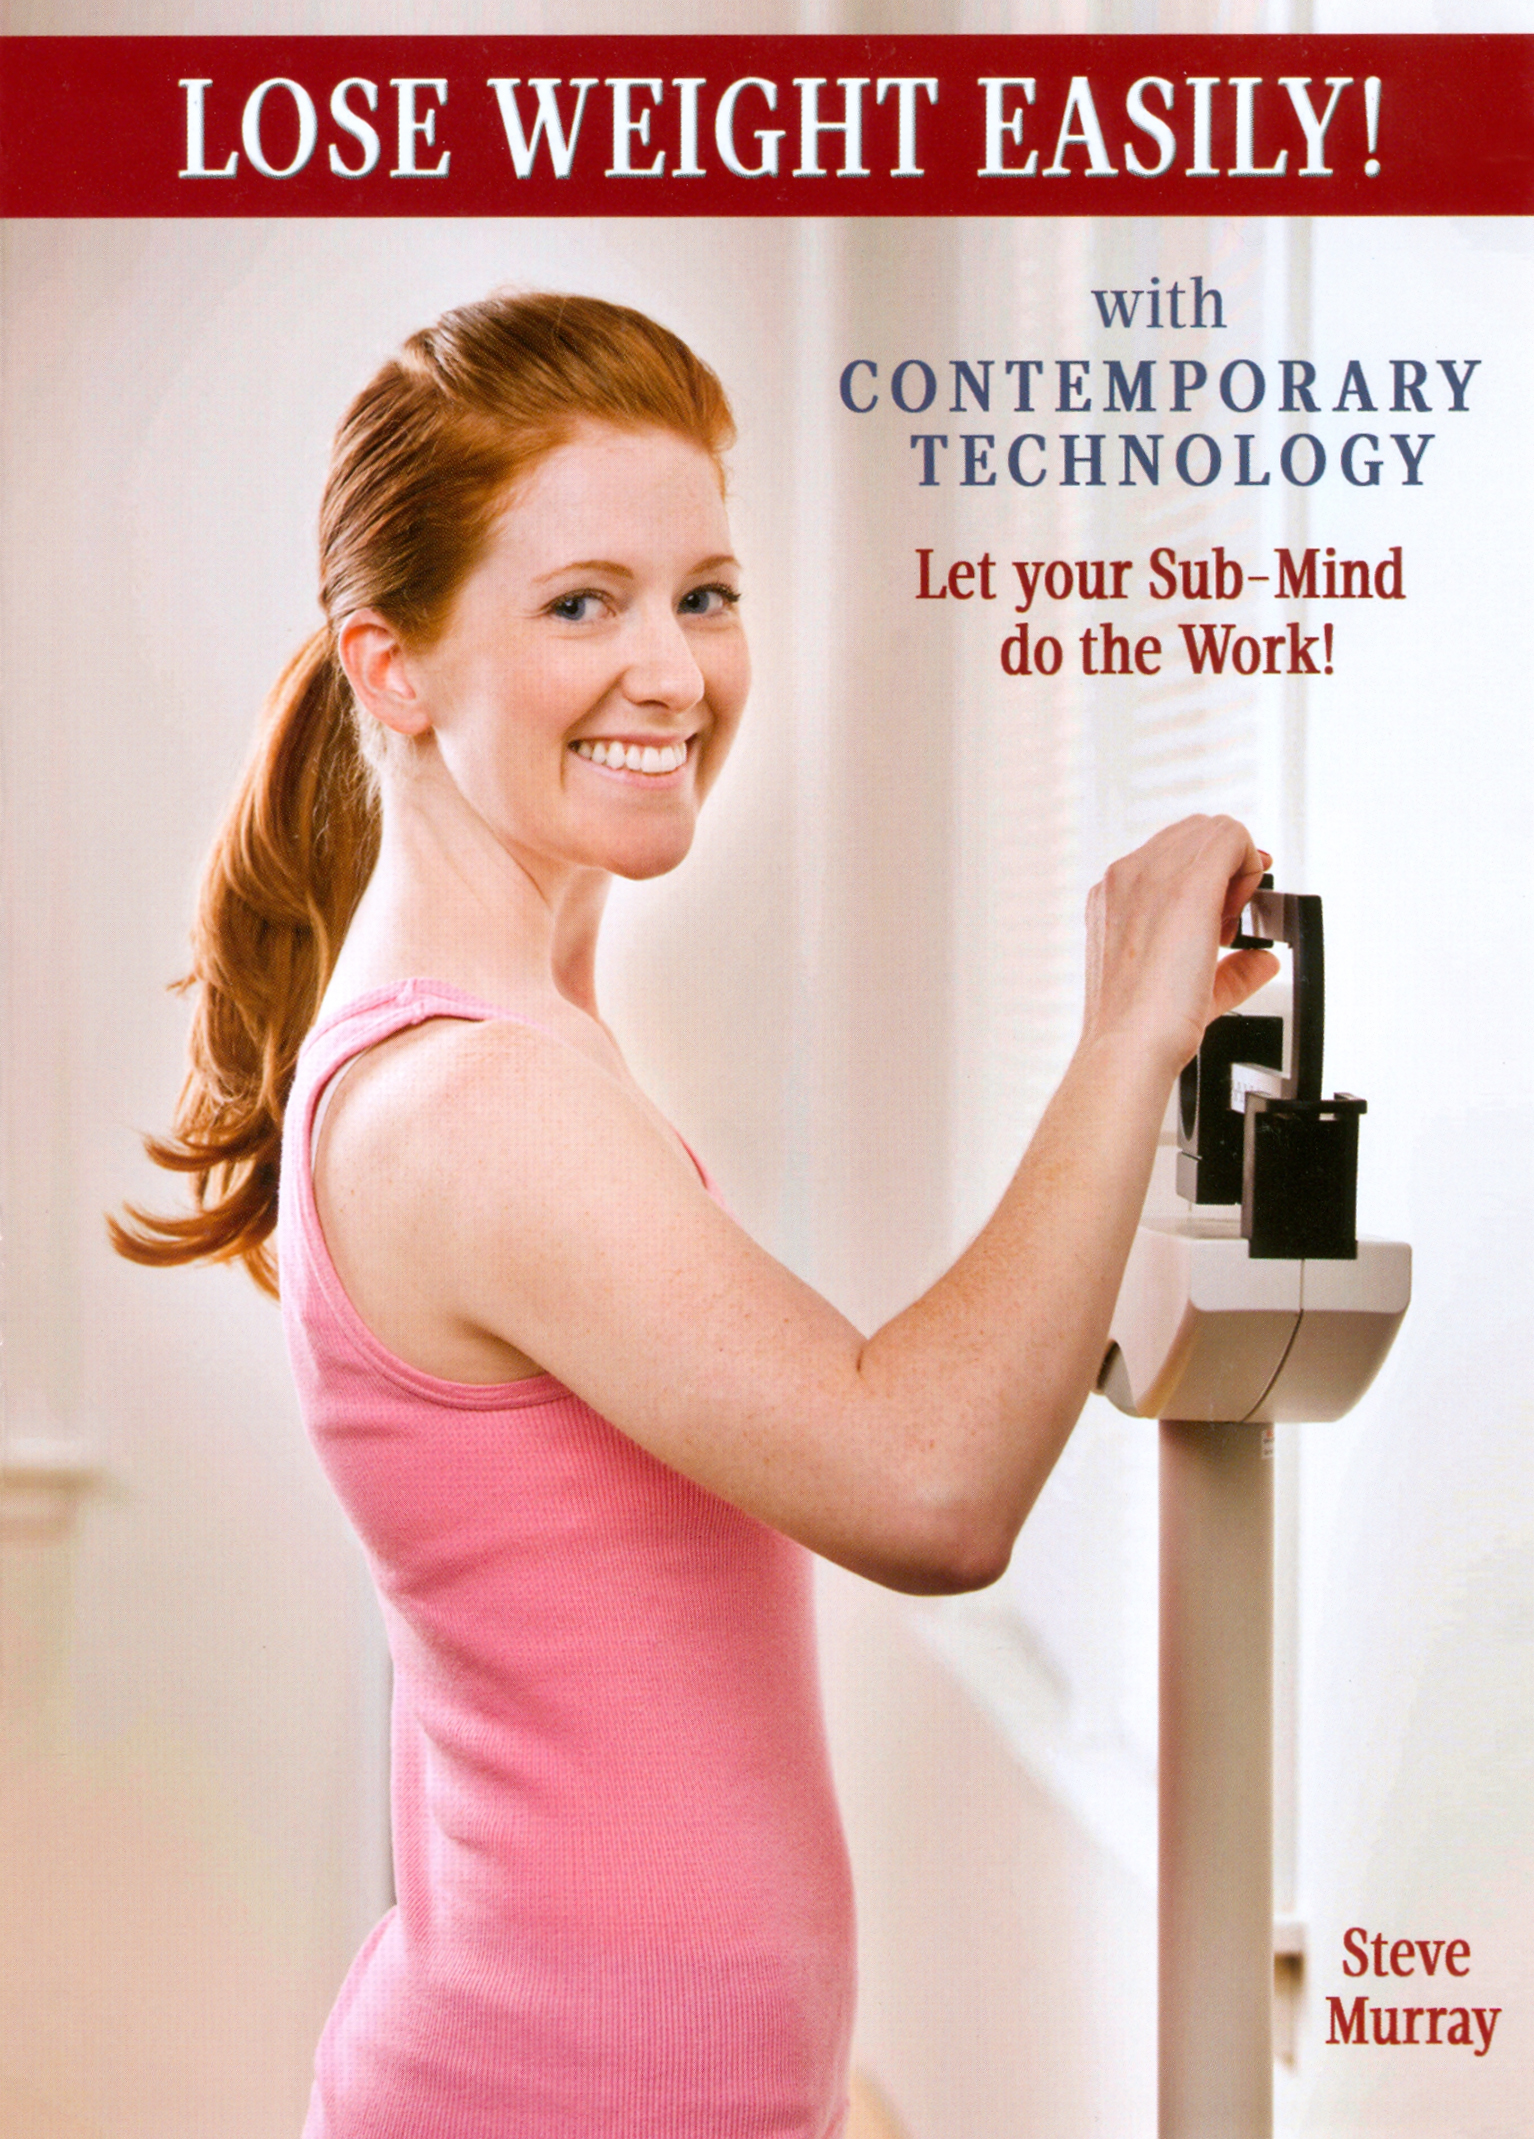 Lose Weight Easily with Contemporary Technology: Let Your Sub-Mind Do the Work!